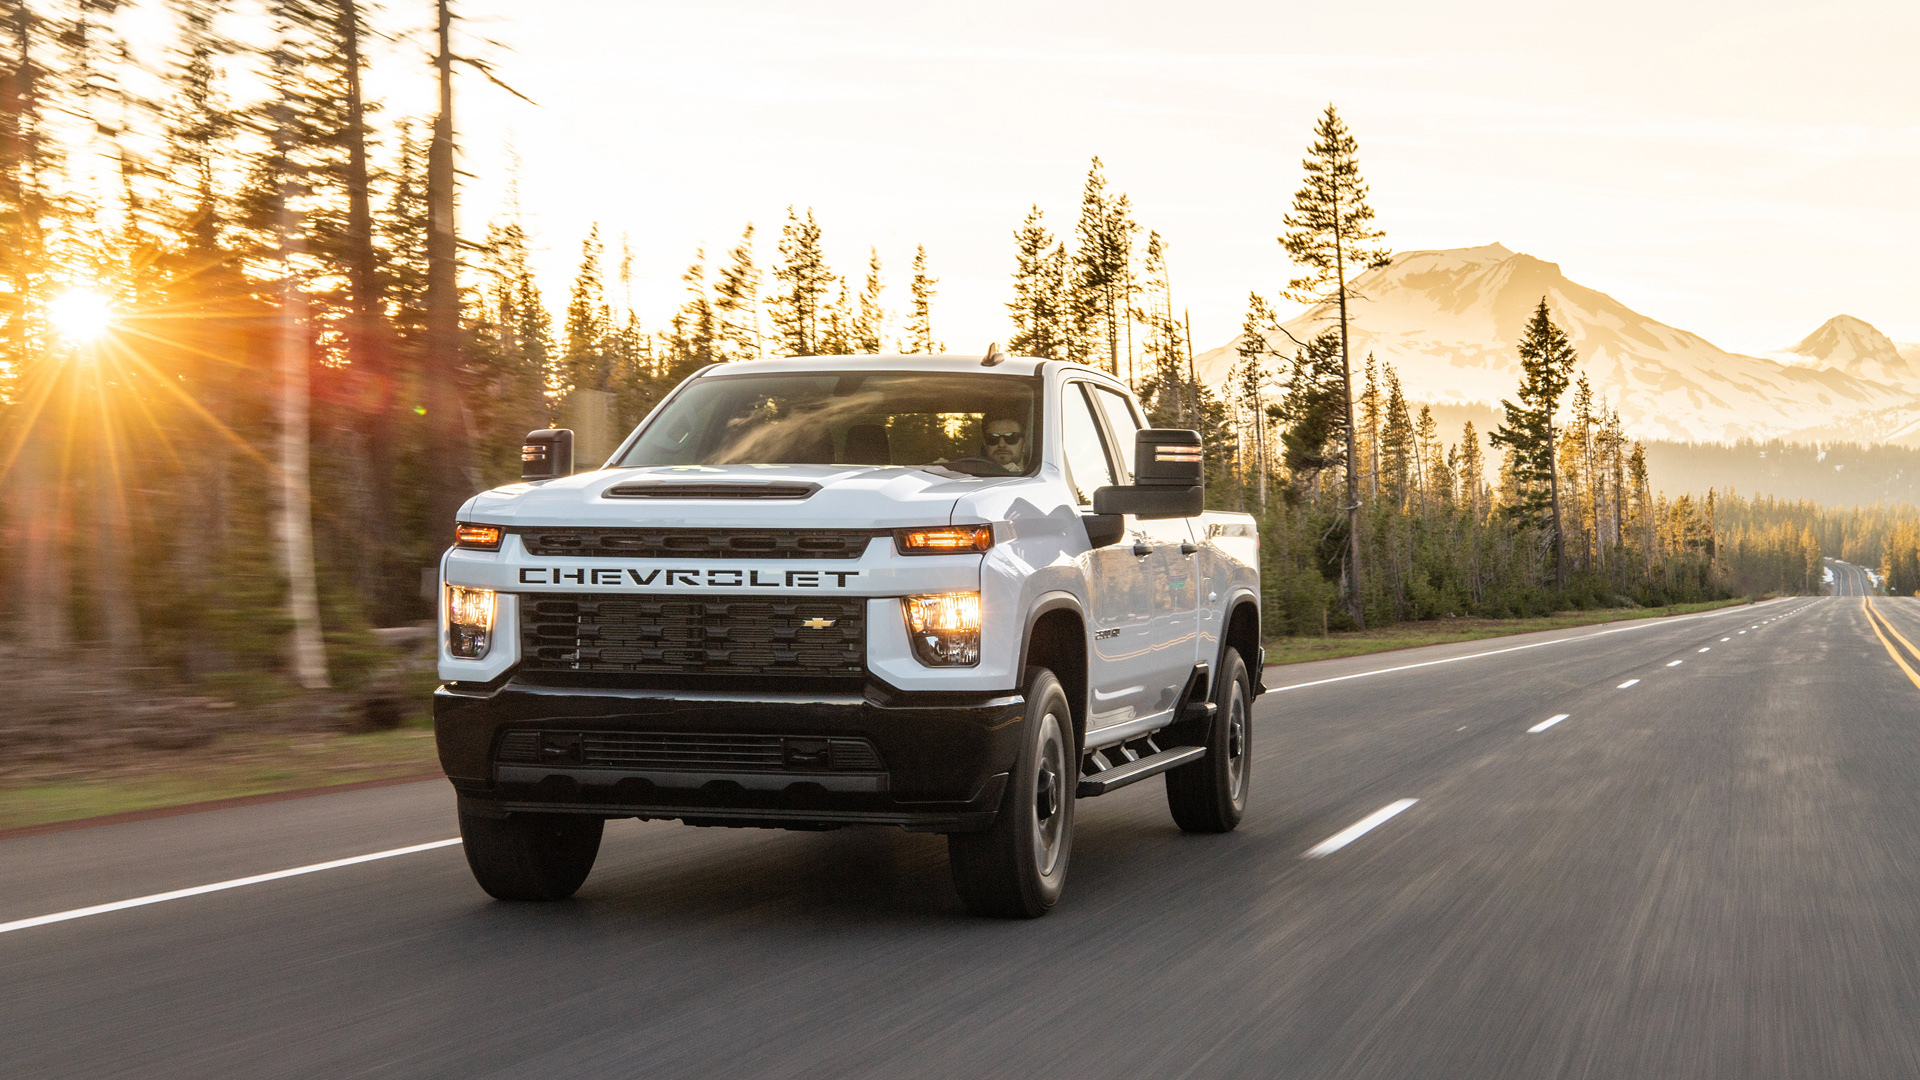 2020 Chevrolet Silverado HD First Drive Review | What's ...